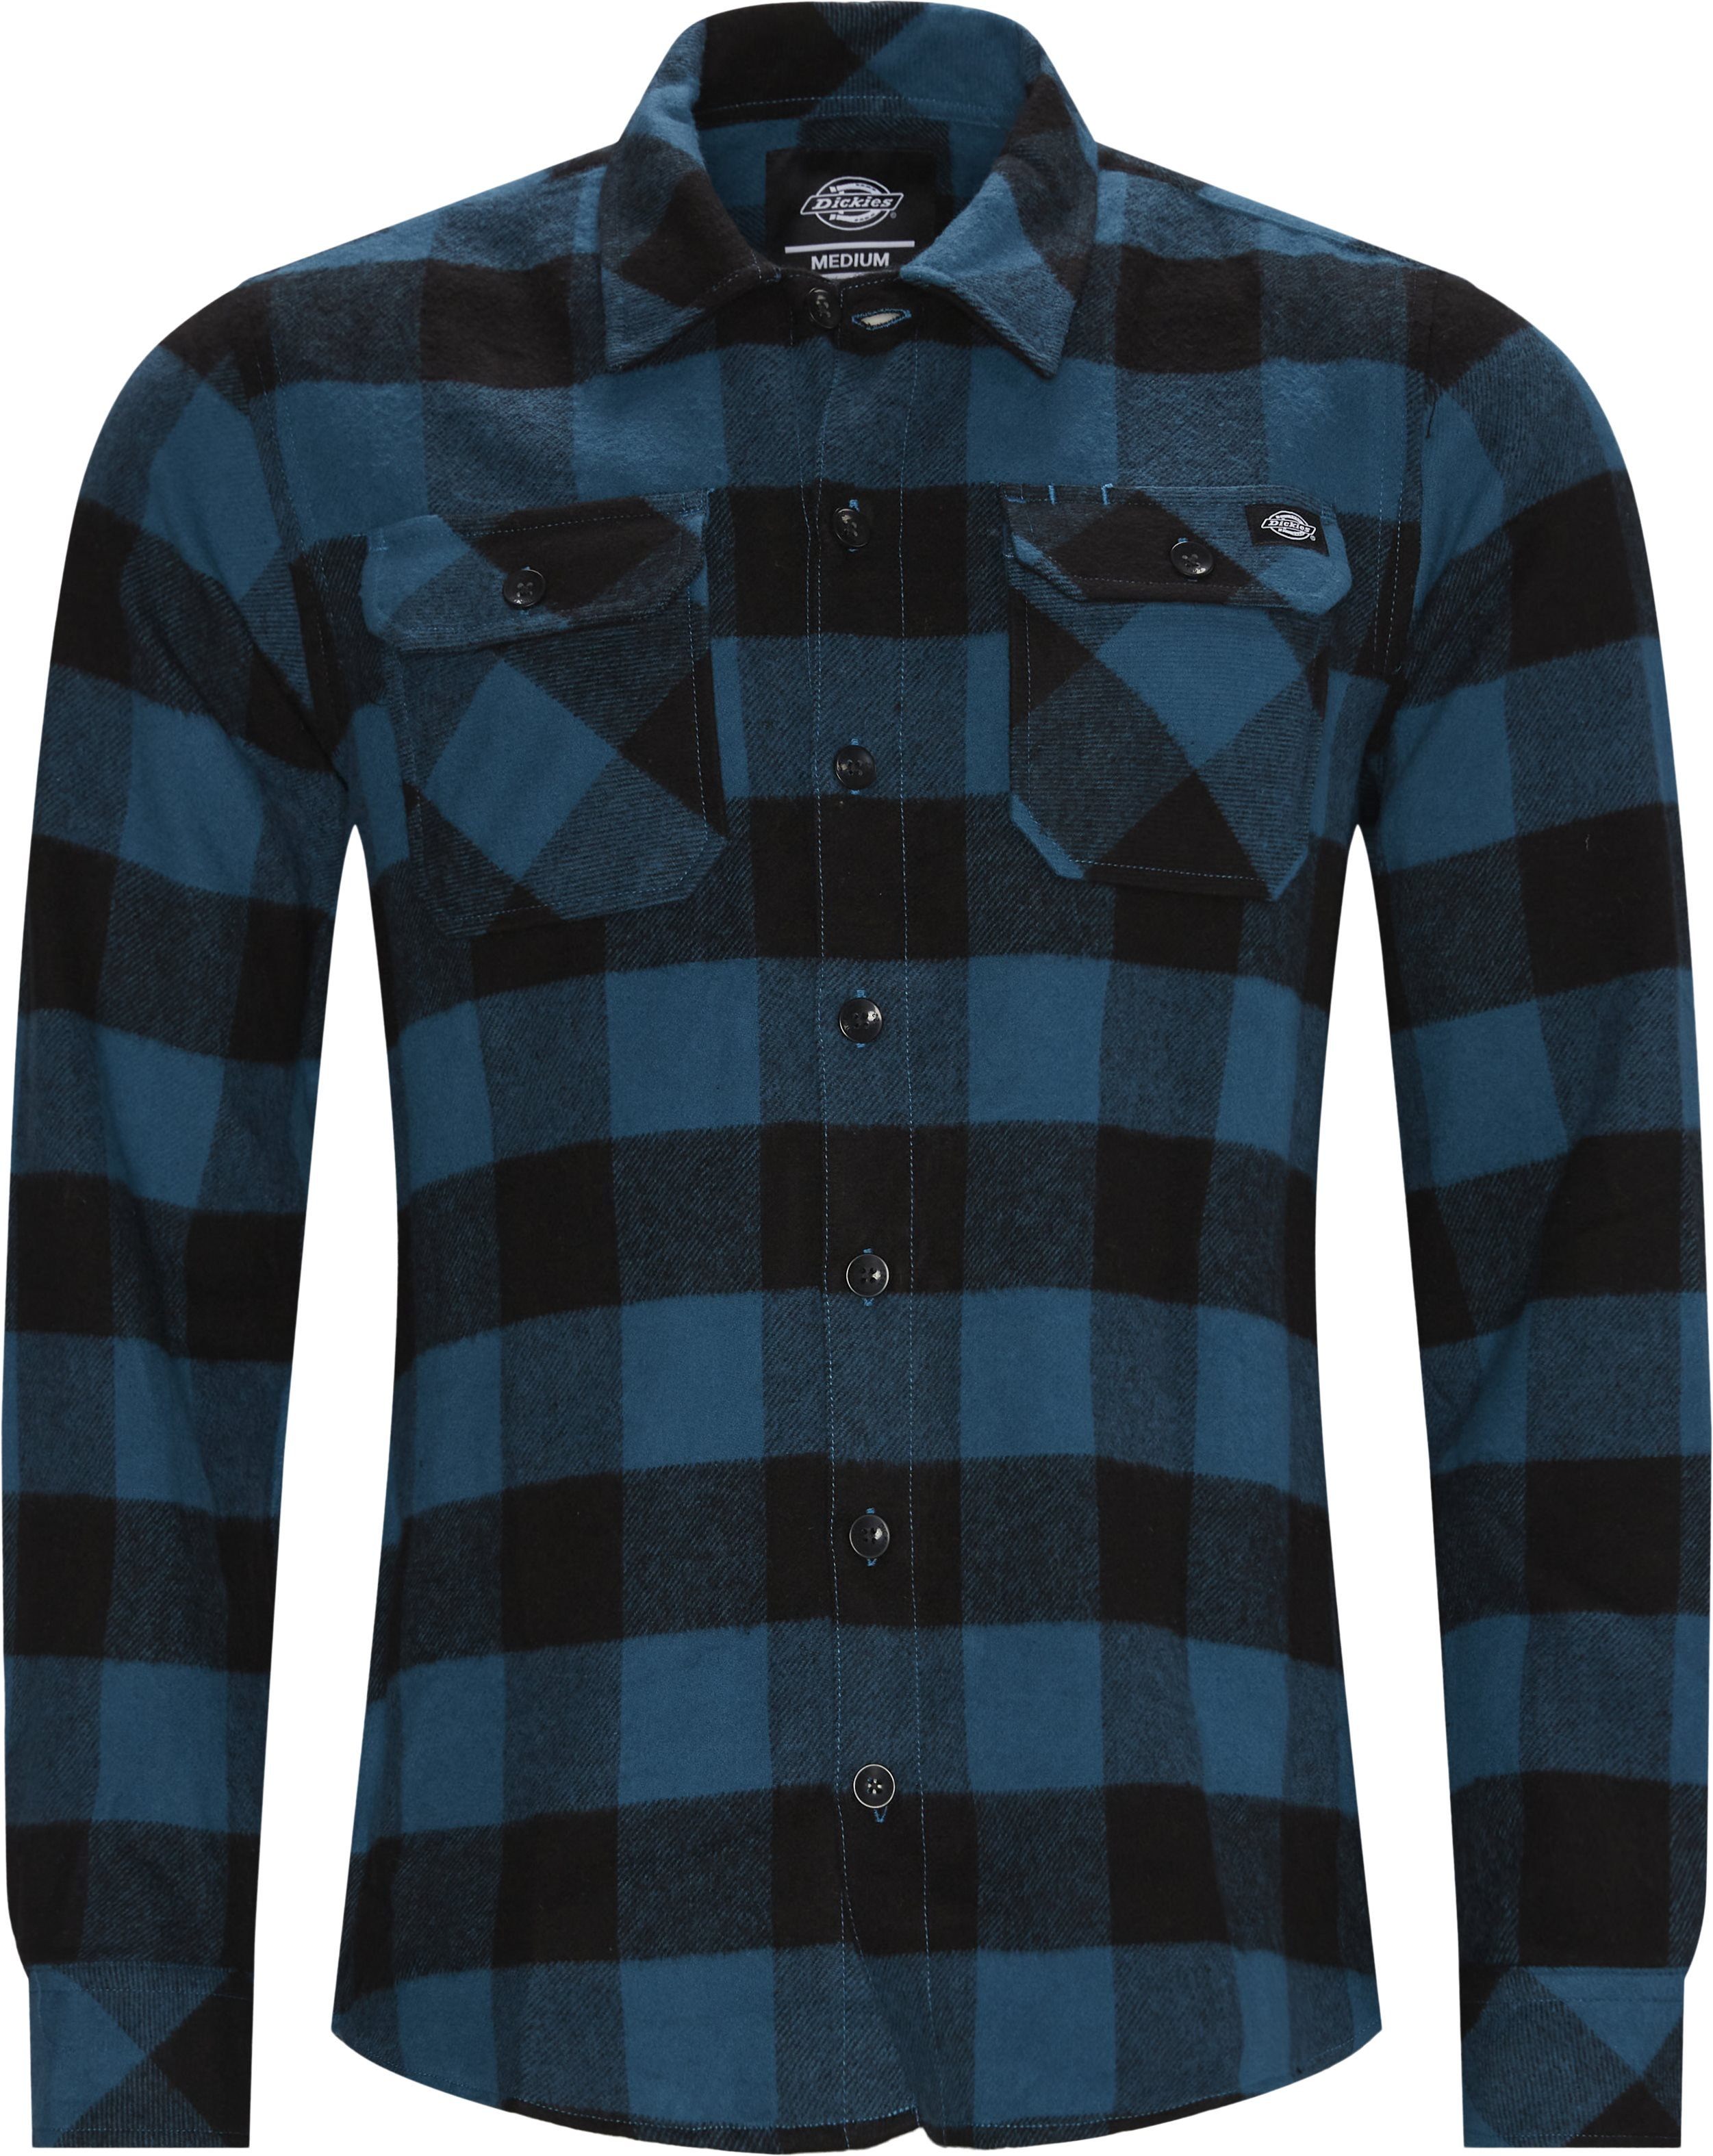 Sacramento Relaxed Shirt - Skjorter - Relaxed fit - Blå